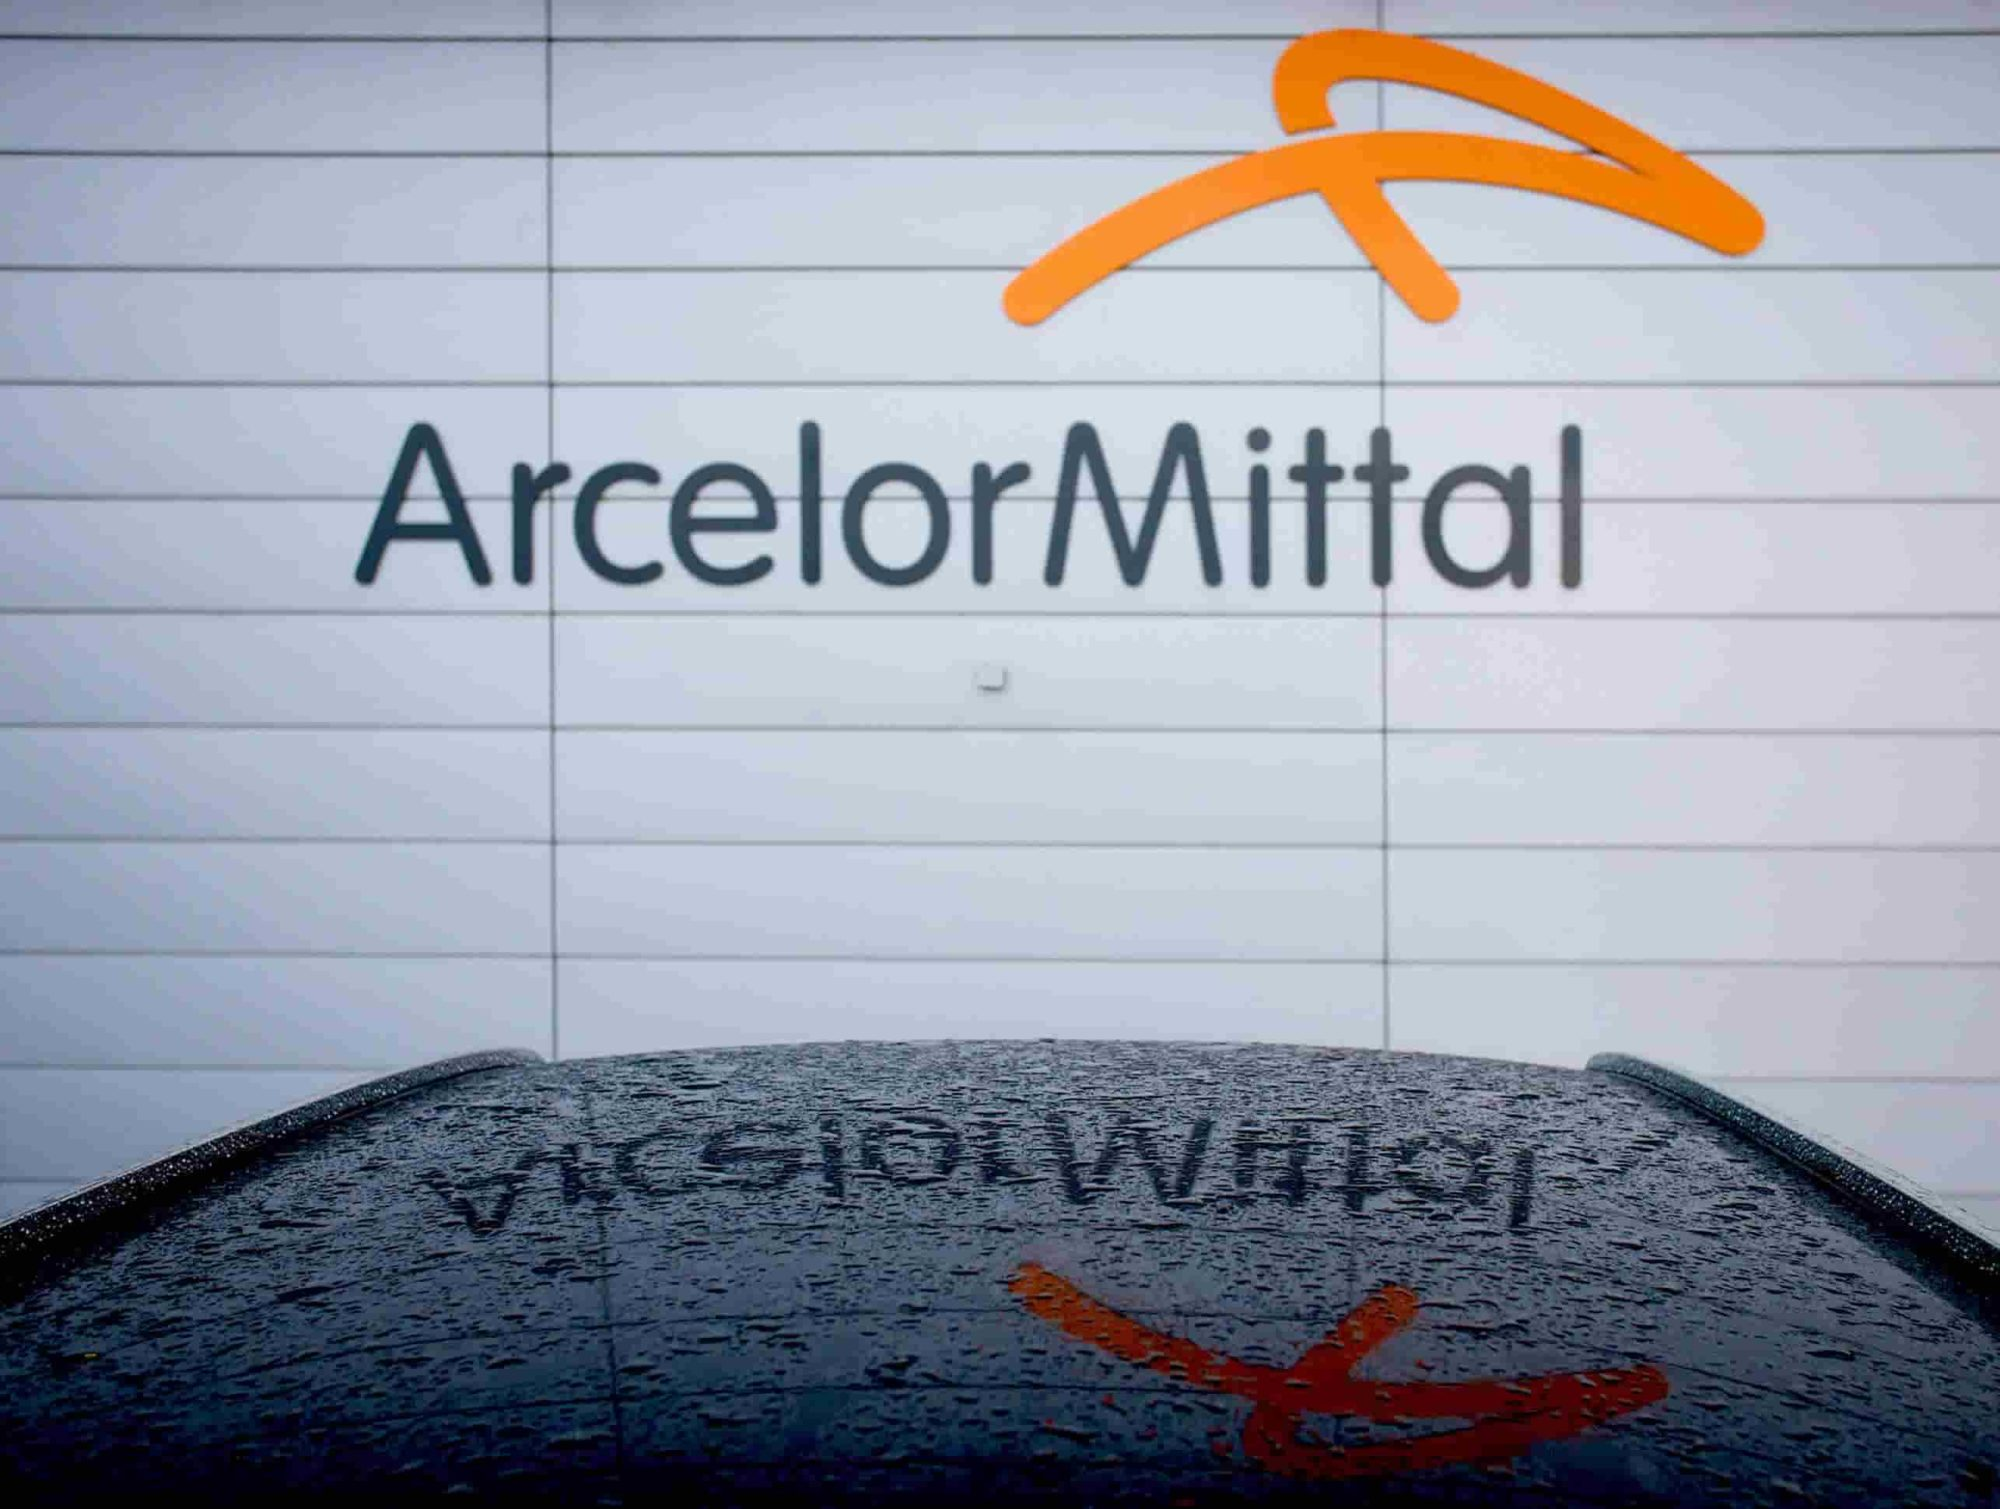 ArcelorMittal to buy Essar Power's plant, bids Rs 48 billion deal to acquire it